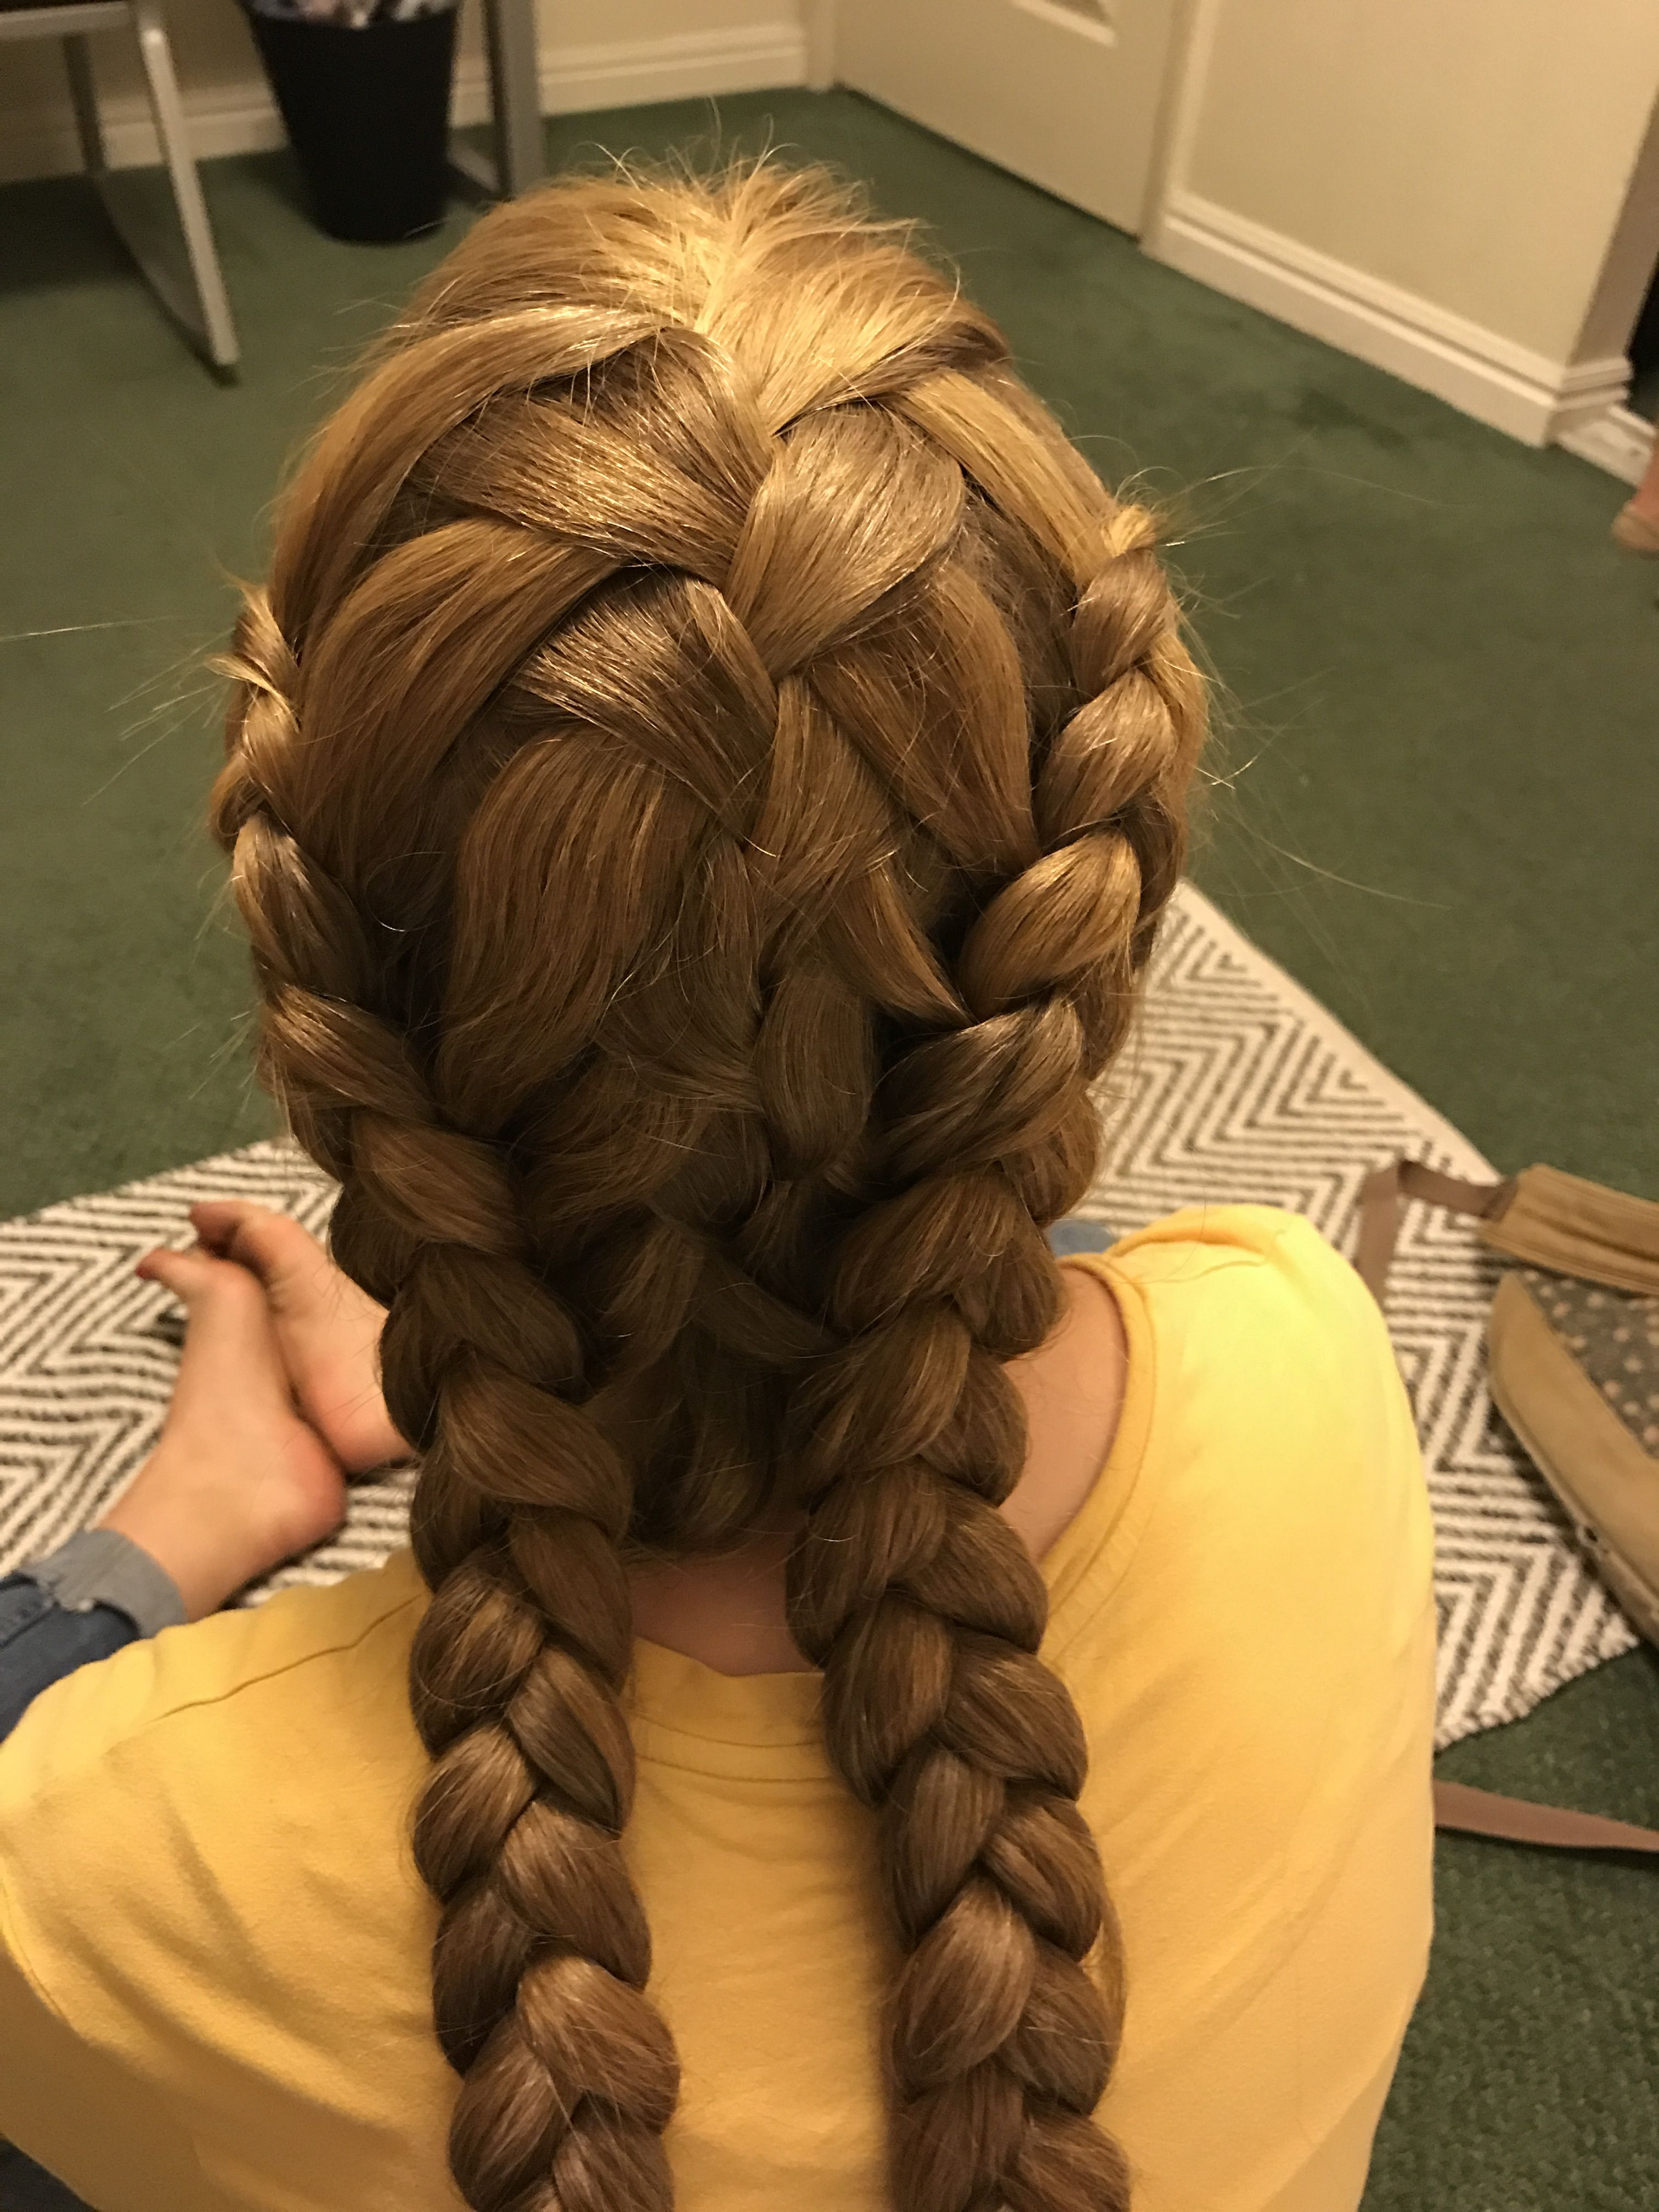 Waterfall Braid Down The Middle And Two Inside Out French Braids On Either Side Inside Out French Braid Waterfall Braid Braids With Beads